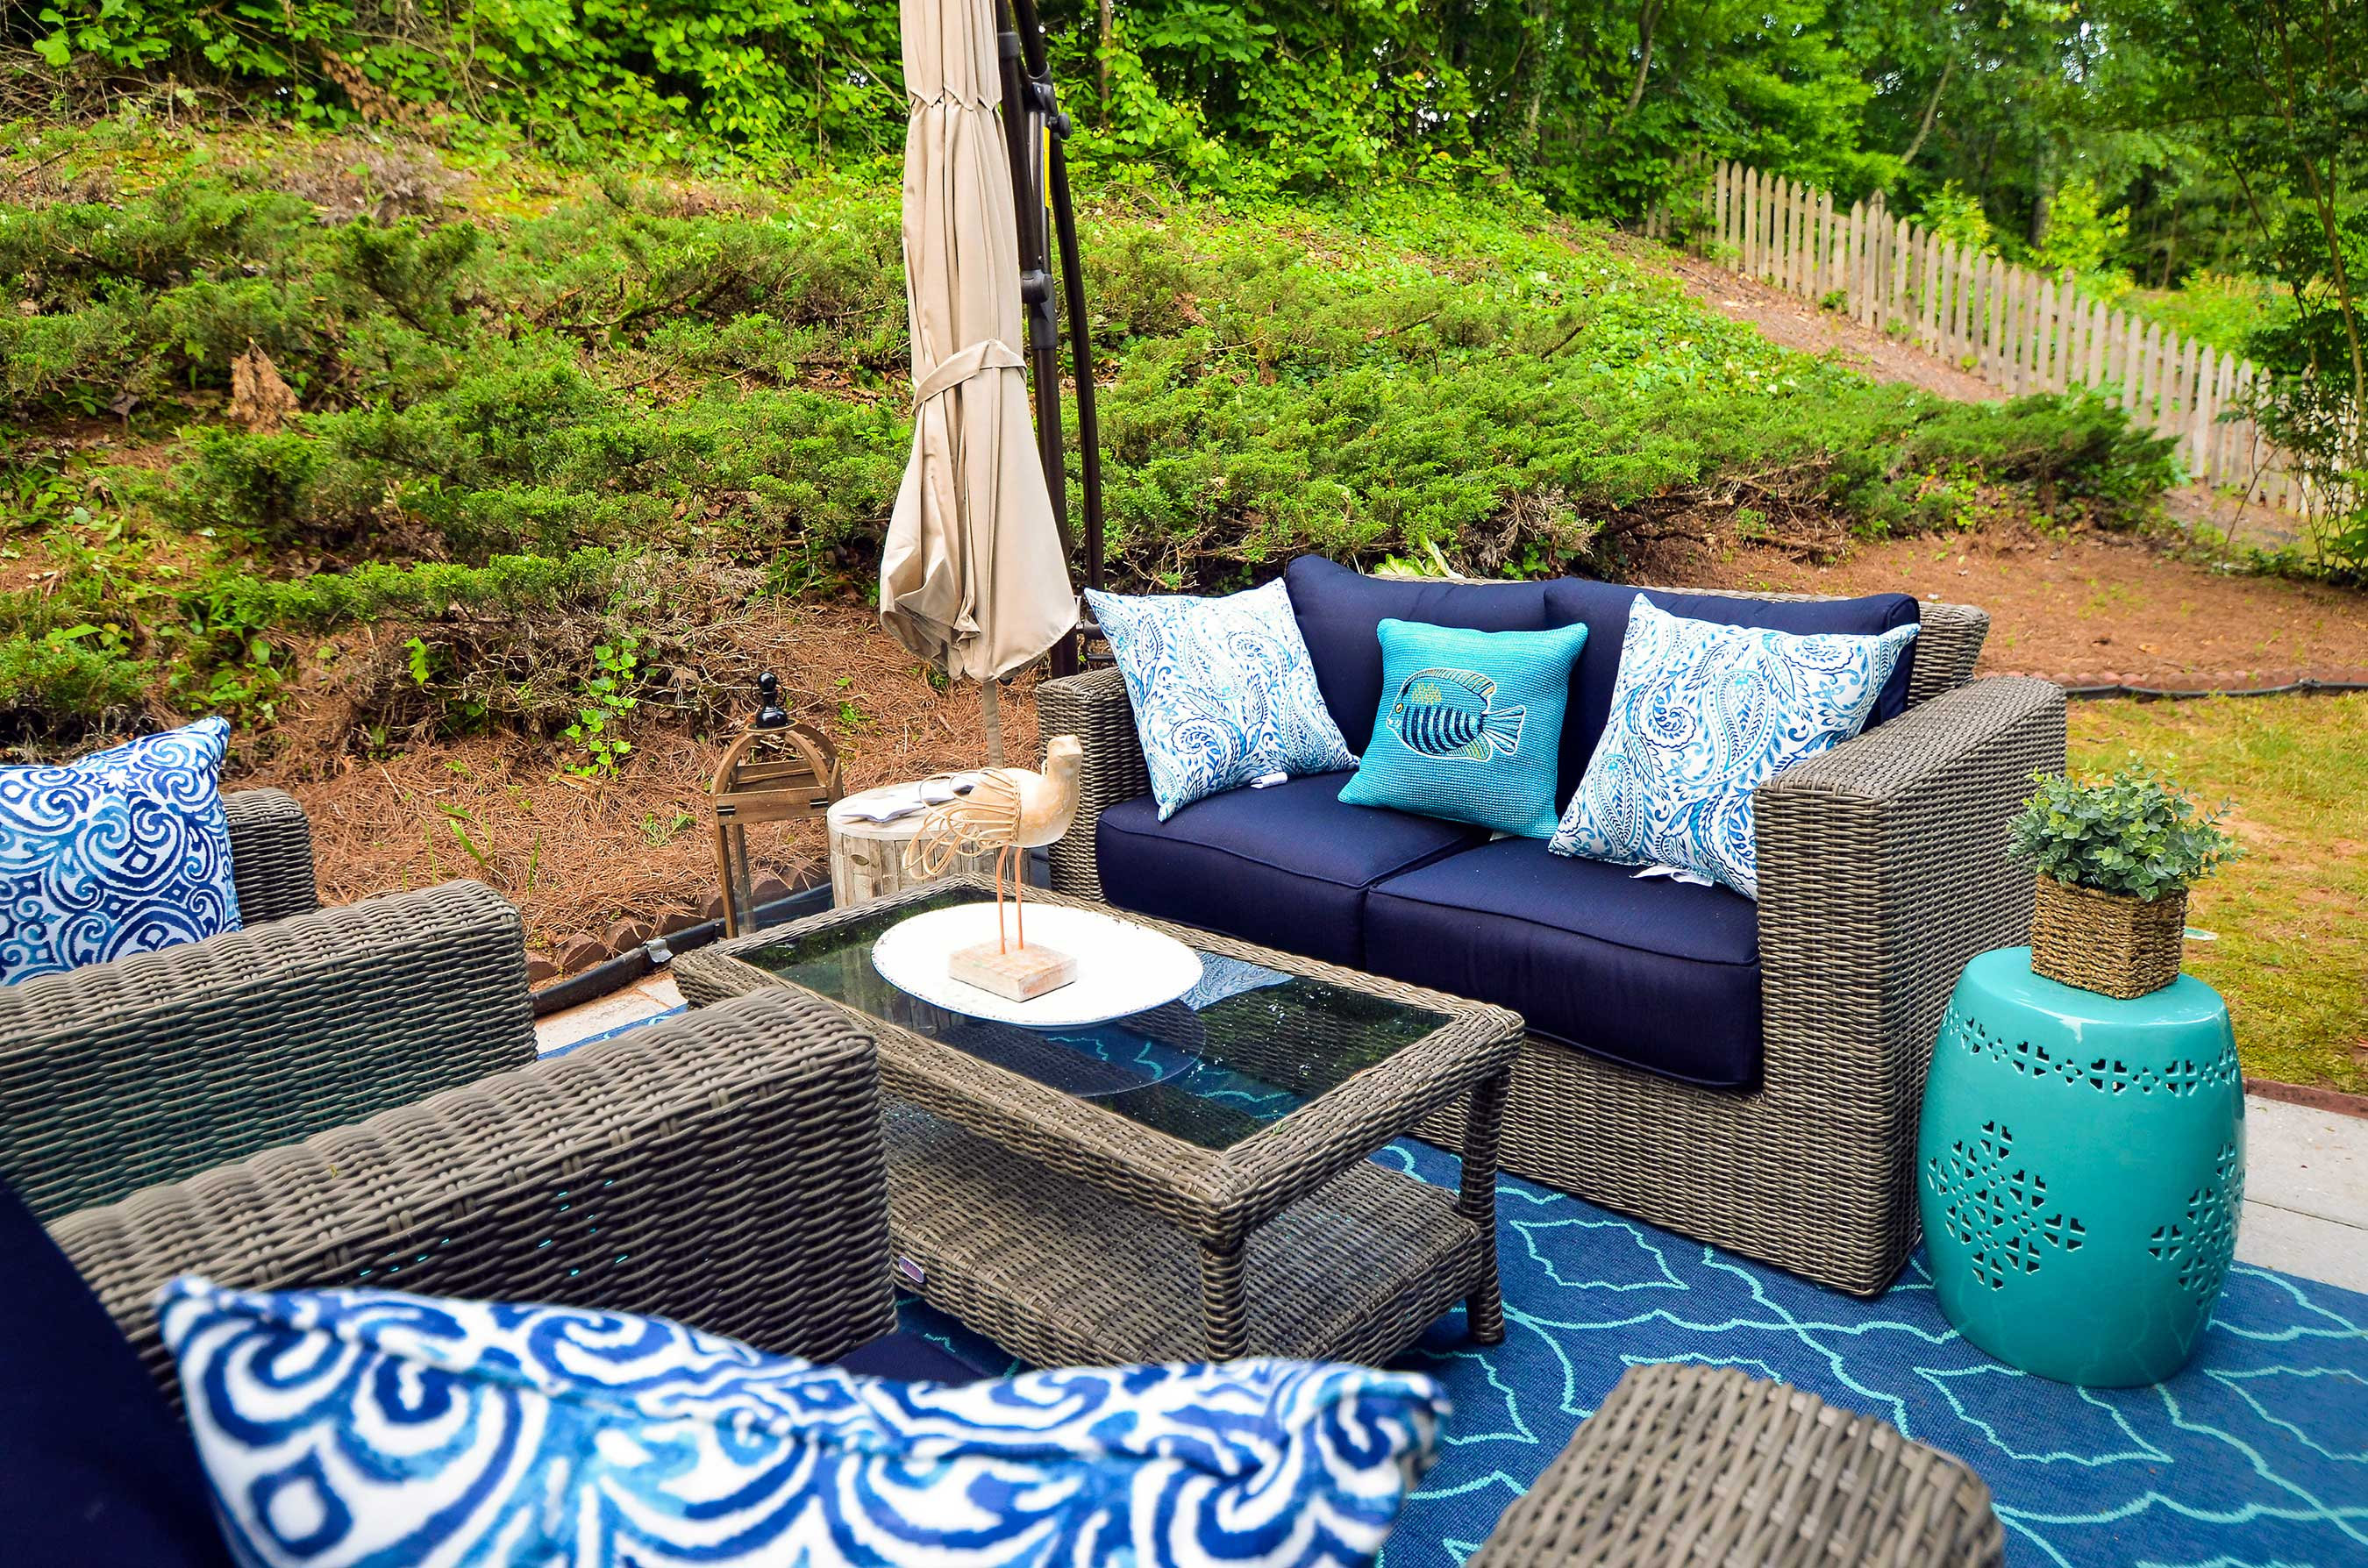 Make it Home Outdoor Living Space